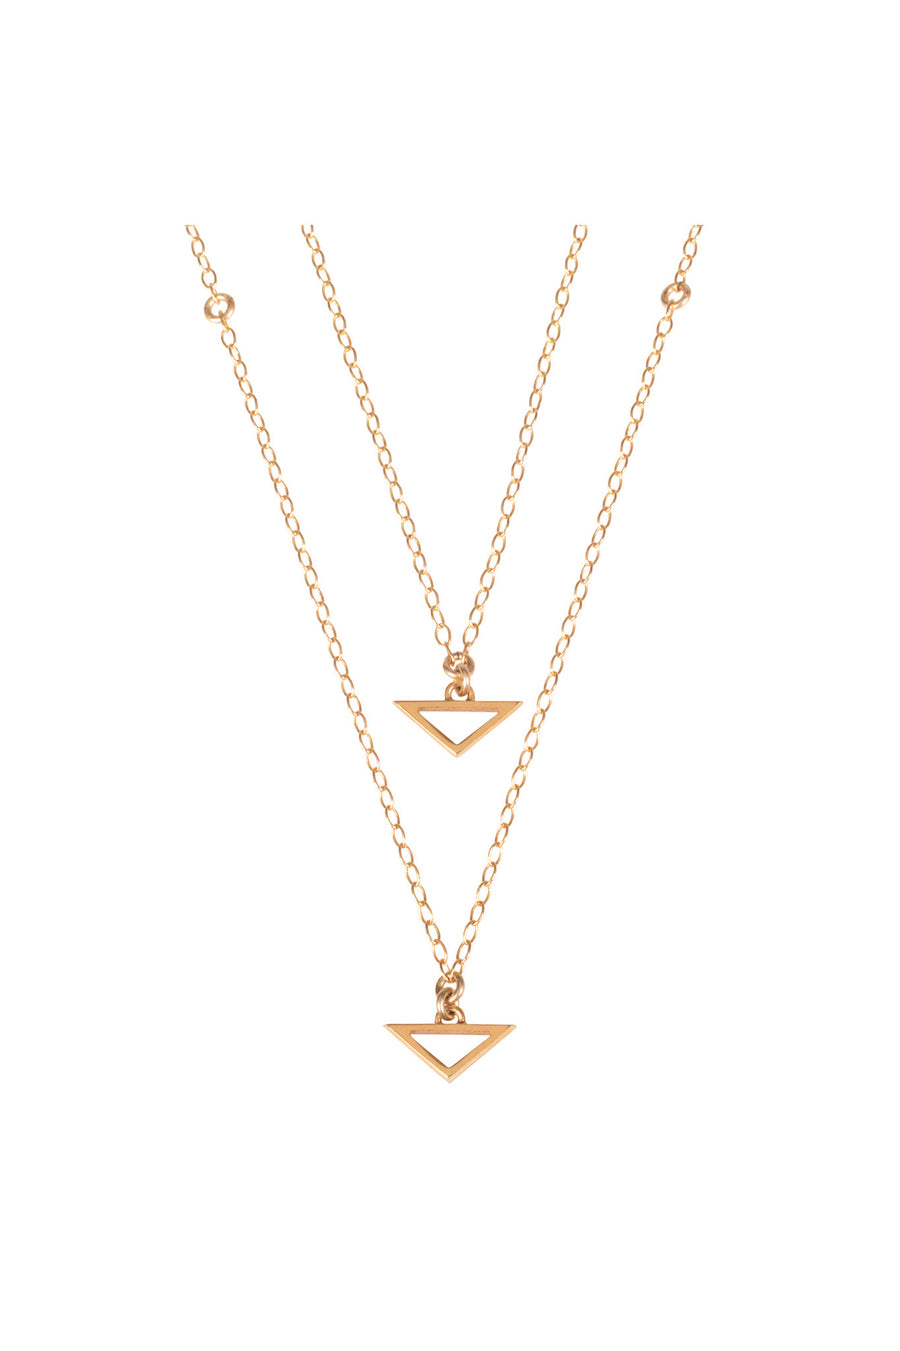 Double Trouble, Gold Multi-Layered Necklace